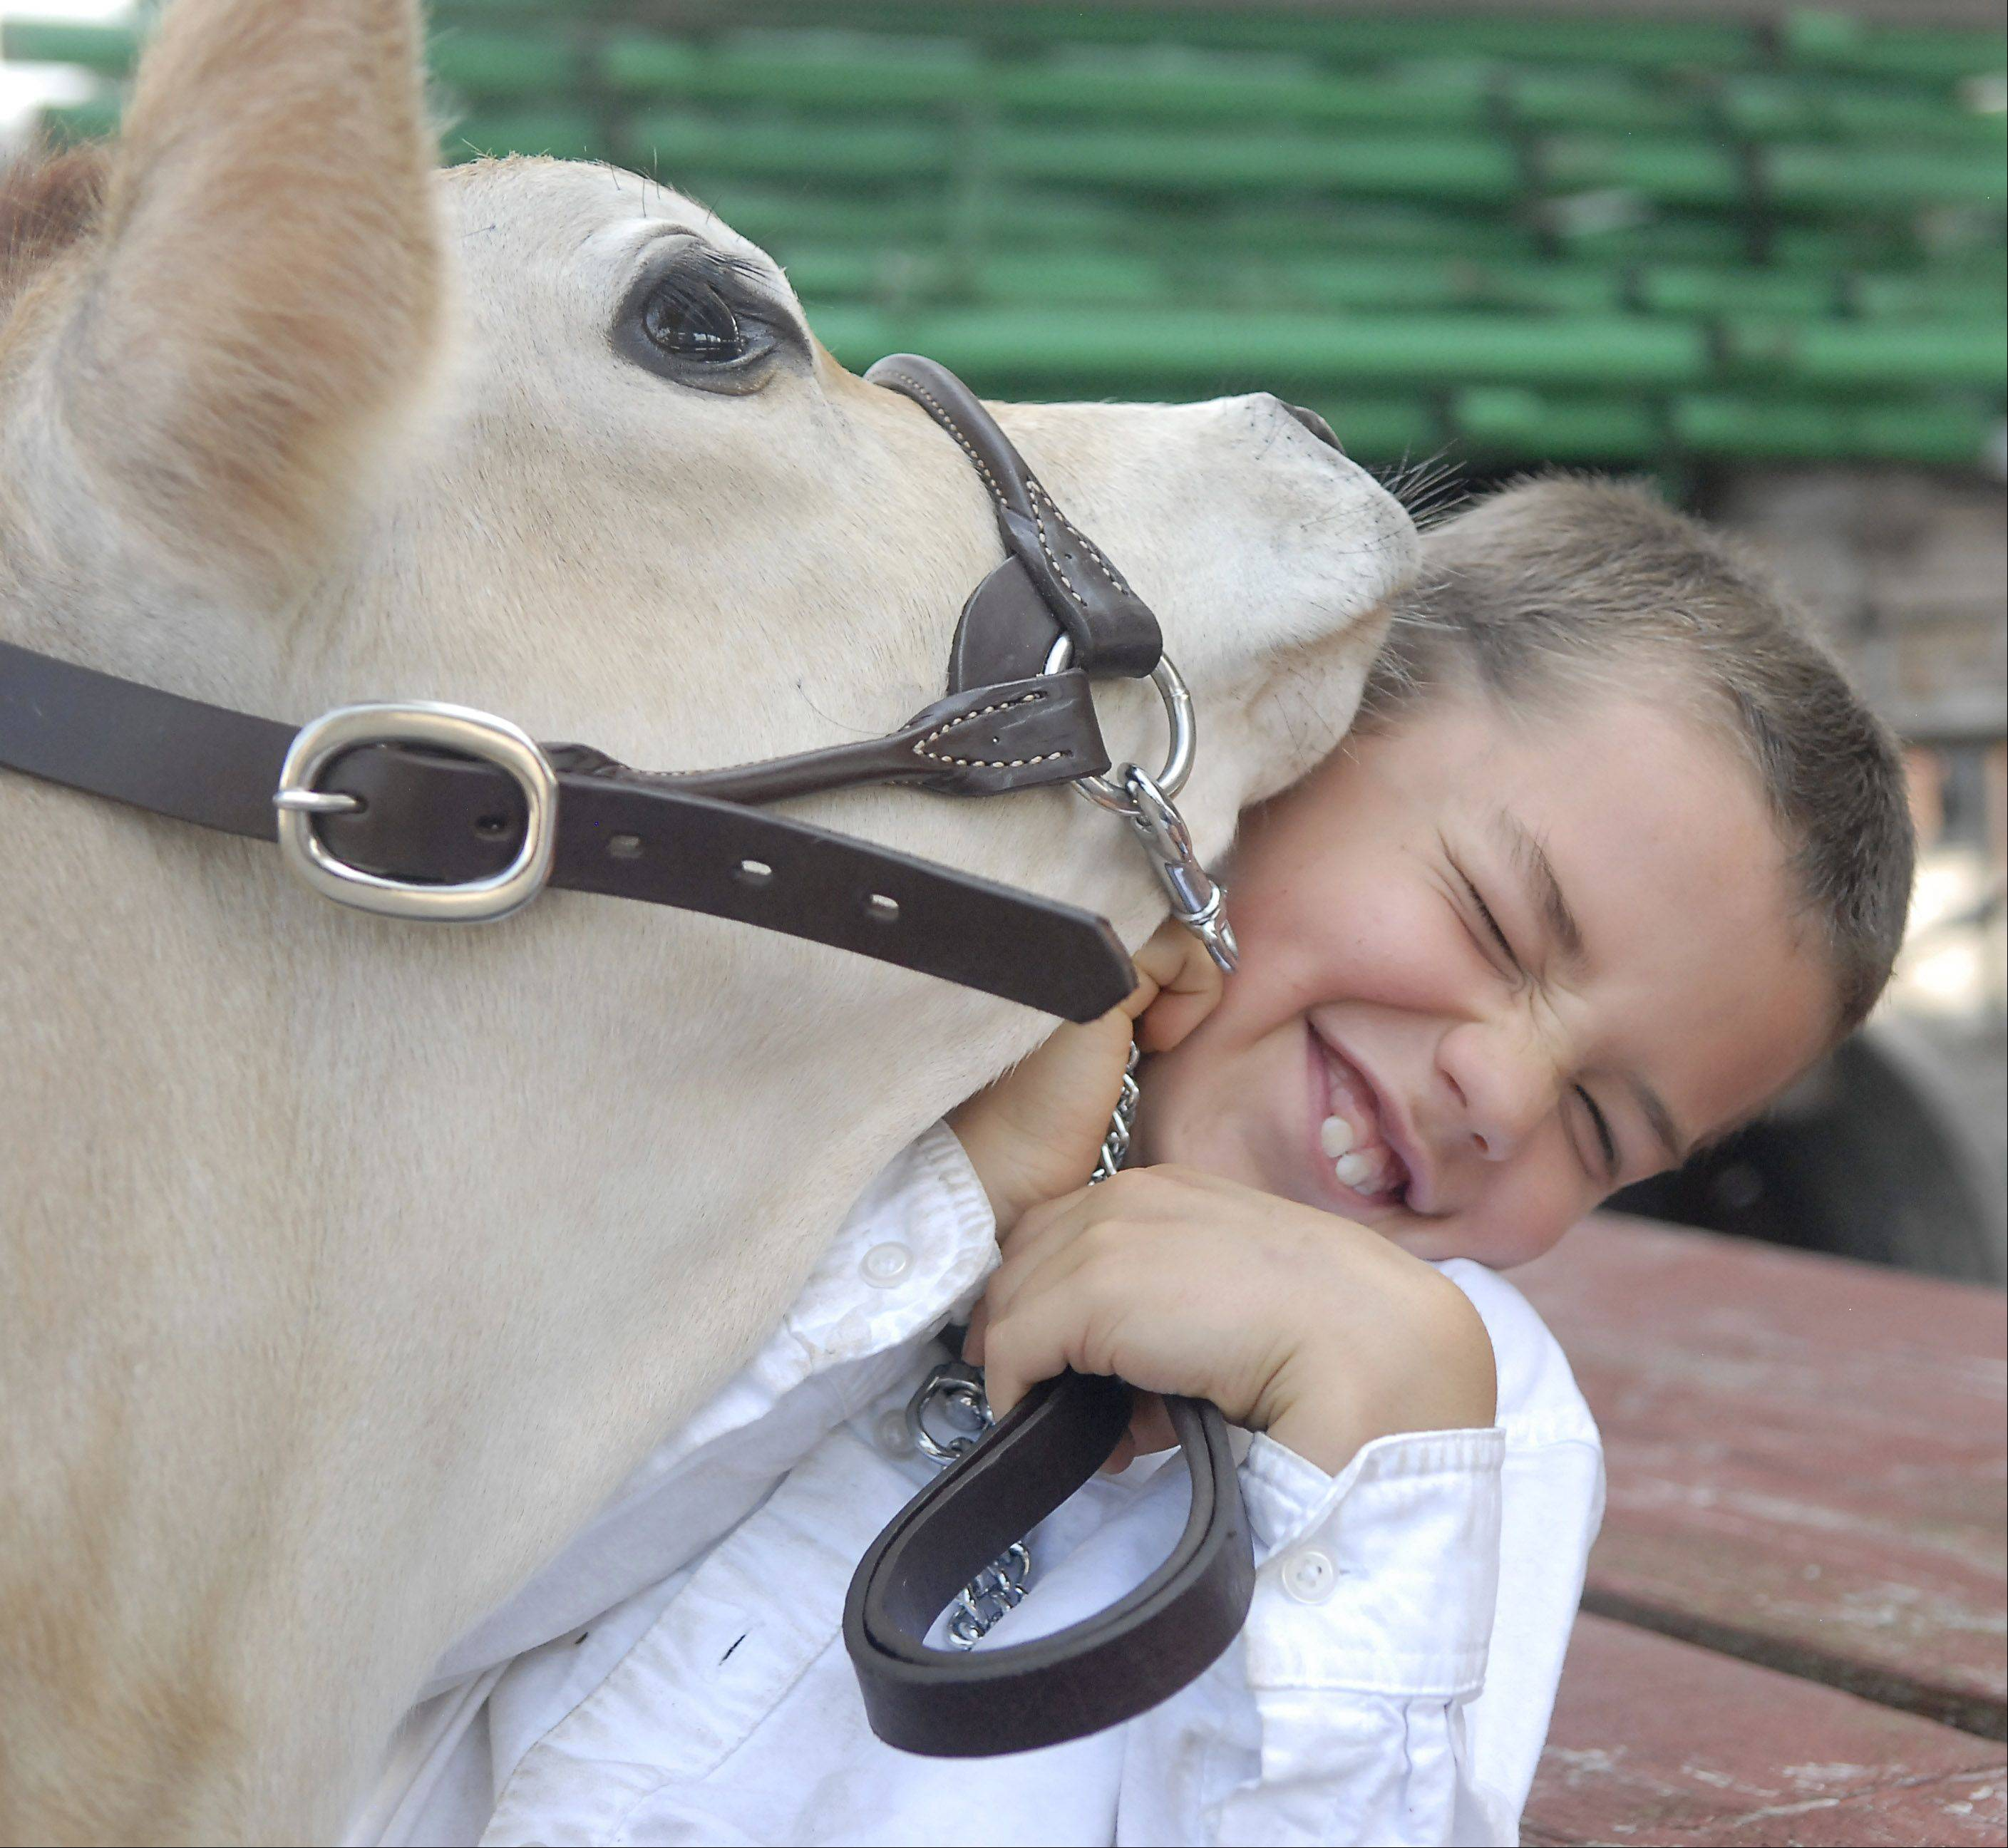 "Paden Thompson, 8, of St. Charles, gets smothered with kisses from four-month-old Jersey calf, Peanut, while they wait for their turn to show in the Jersey Junior Hefer category at the Kane County Fair on Thursday. Peanut's sandpaper-like tongue left Paden's cheek a rosy color afterward. Peanut and her sister, Clover, are calves from Primrose Farm in St. Charles. Paden and his sister, Emily, 11, are volunteers and have taken care of the calves ever since they were born. Peanut happened to be born on Paden's birthday. ""I just like sitting with them and working with them,"" says Paden. The 4-H program at Primrose Farm gets suburban kids who don't live on a farm a chance to be involved in the farm program."